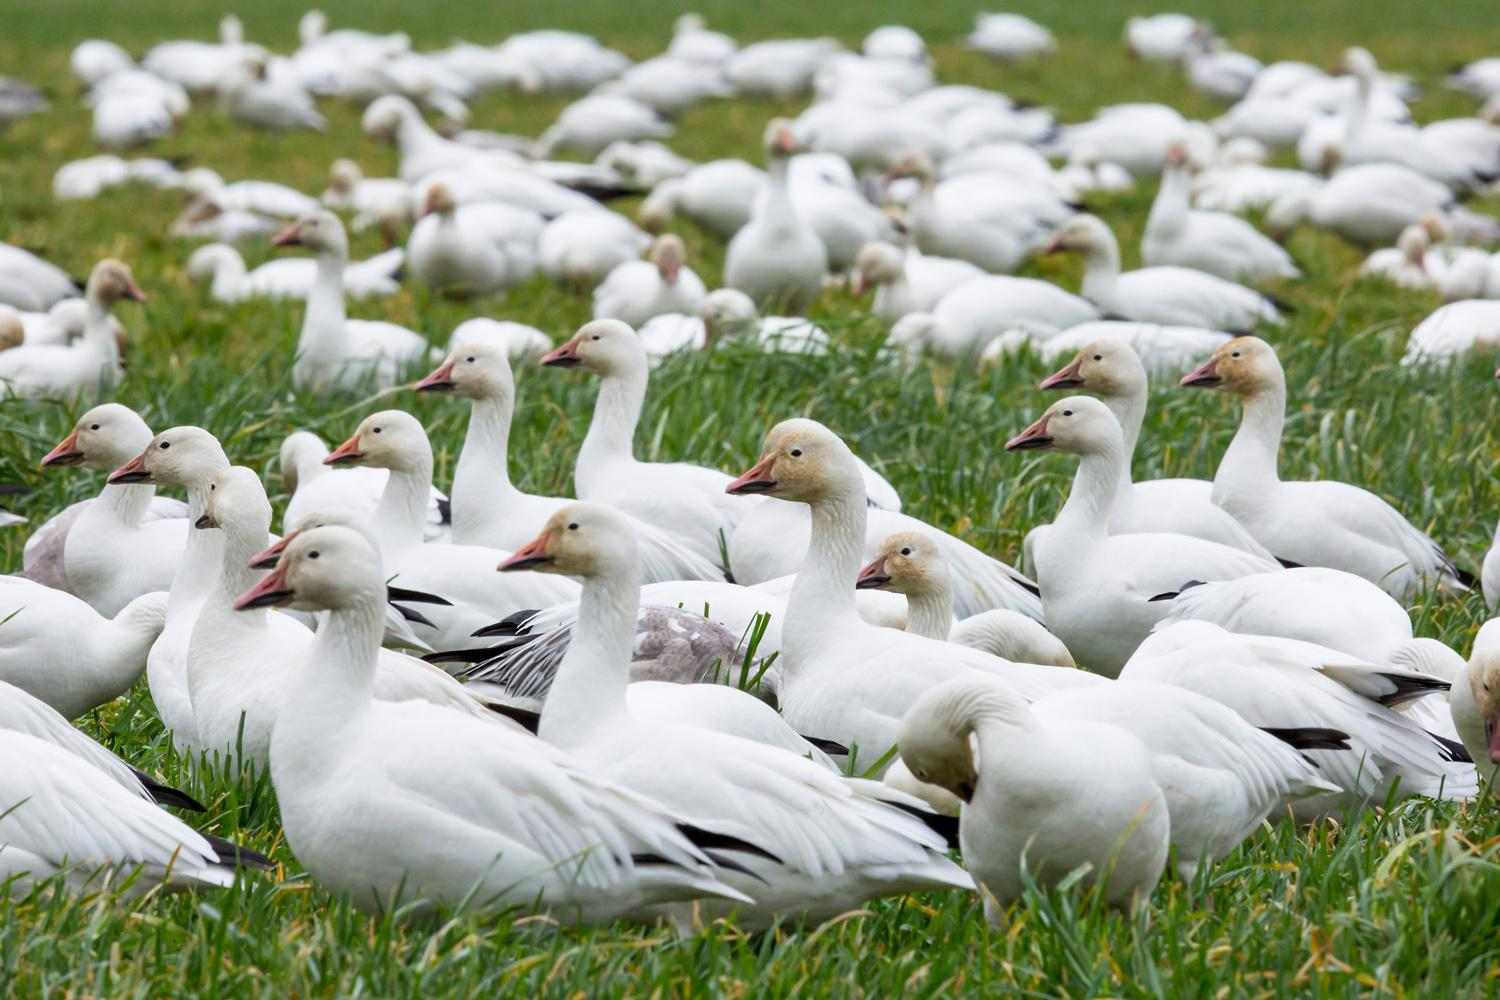 Each year, tens of thousands of snow geese migrate to the Pacific Northwest from Siberia and Alaska for the winter, along with tundra and trumpeter swans. One of their favorite wintering grounds is the Skagit Valley Delta - only an hour drive from Seattle. (Sy Bean / Seattle Refined)